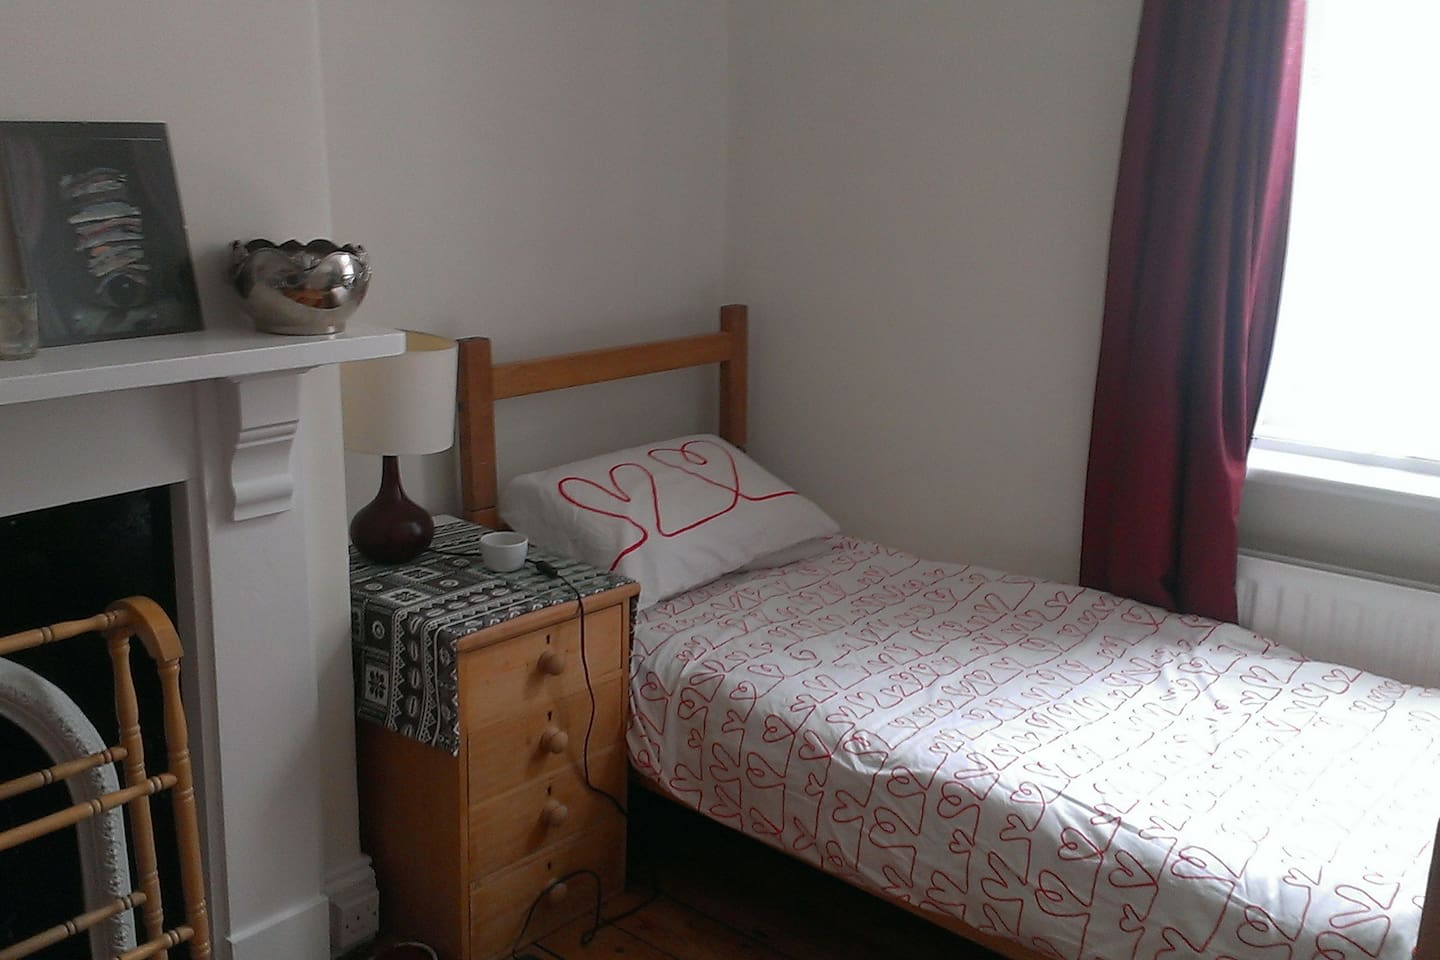 Spacious and cosy with a desk, TV and WiFi facility.